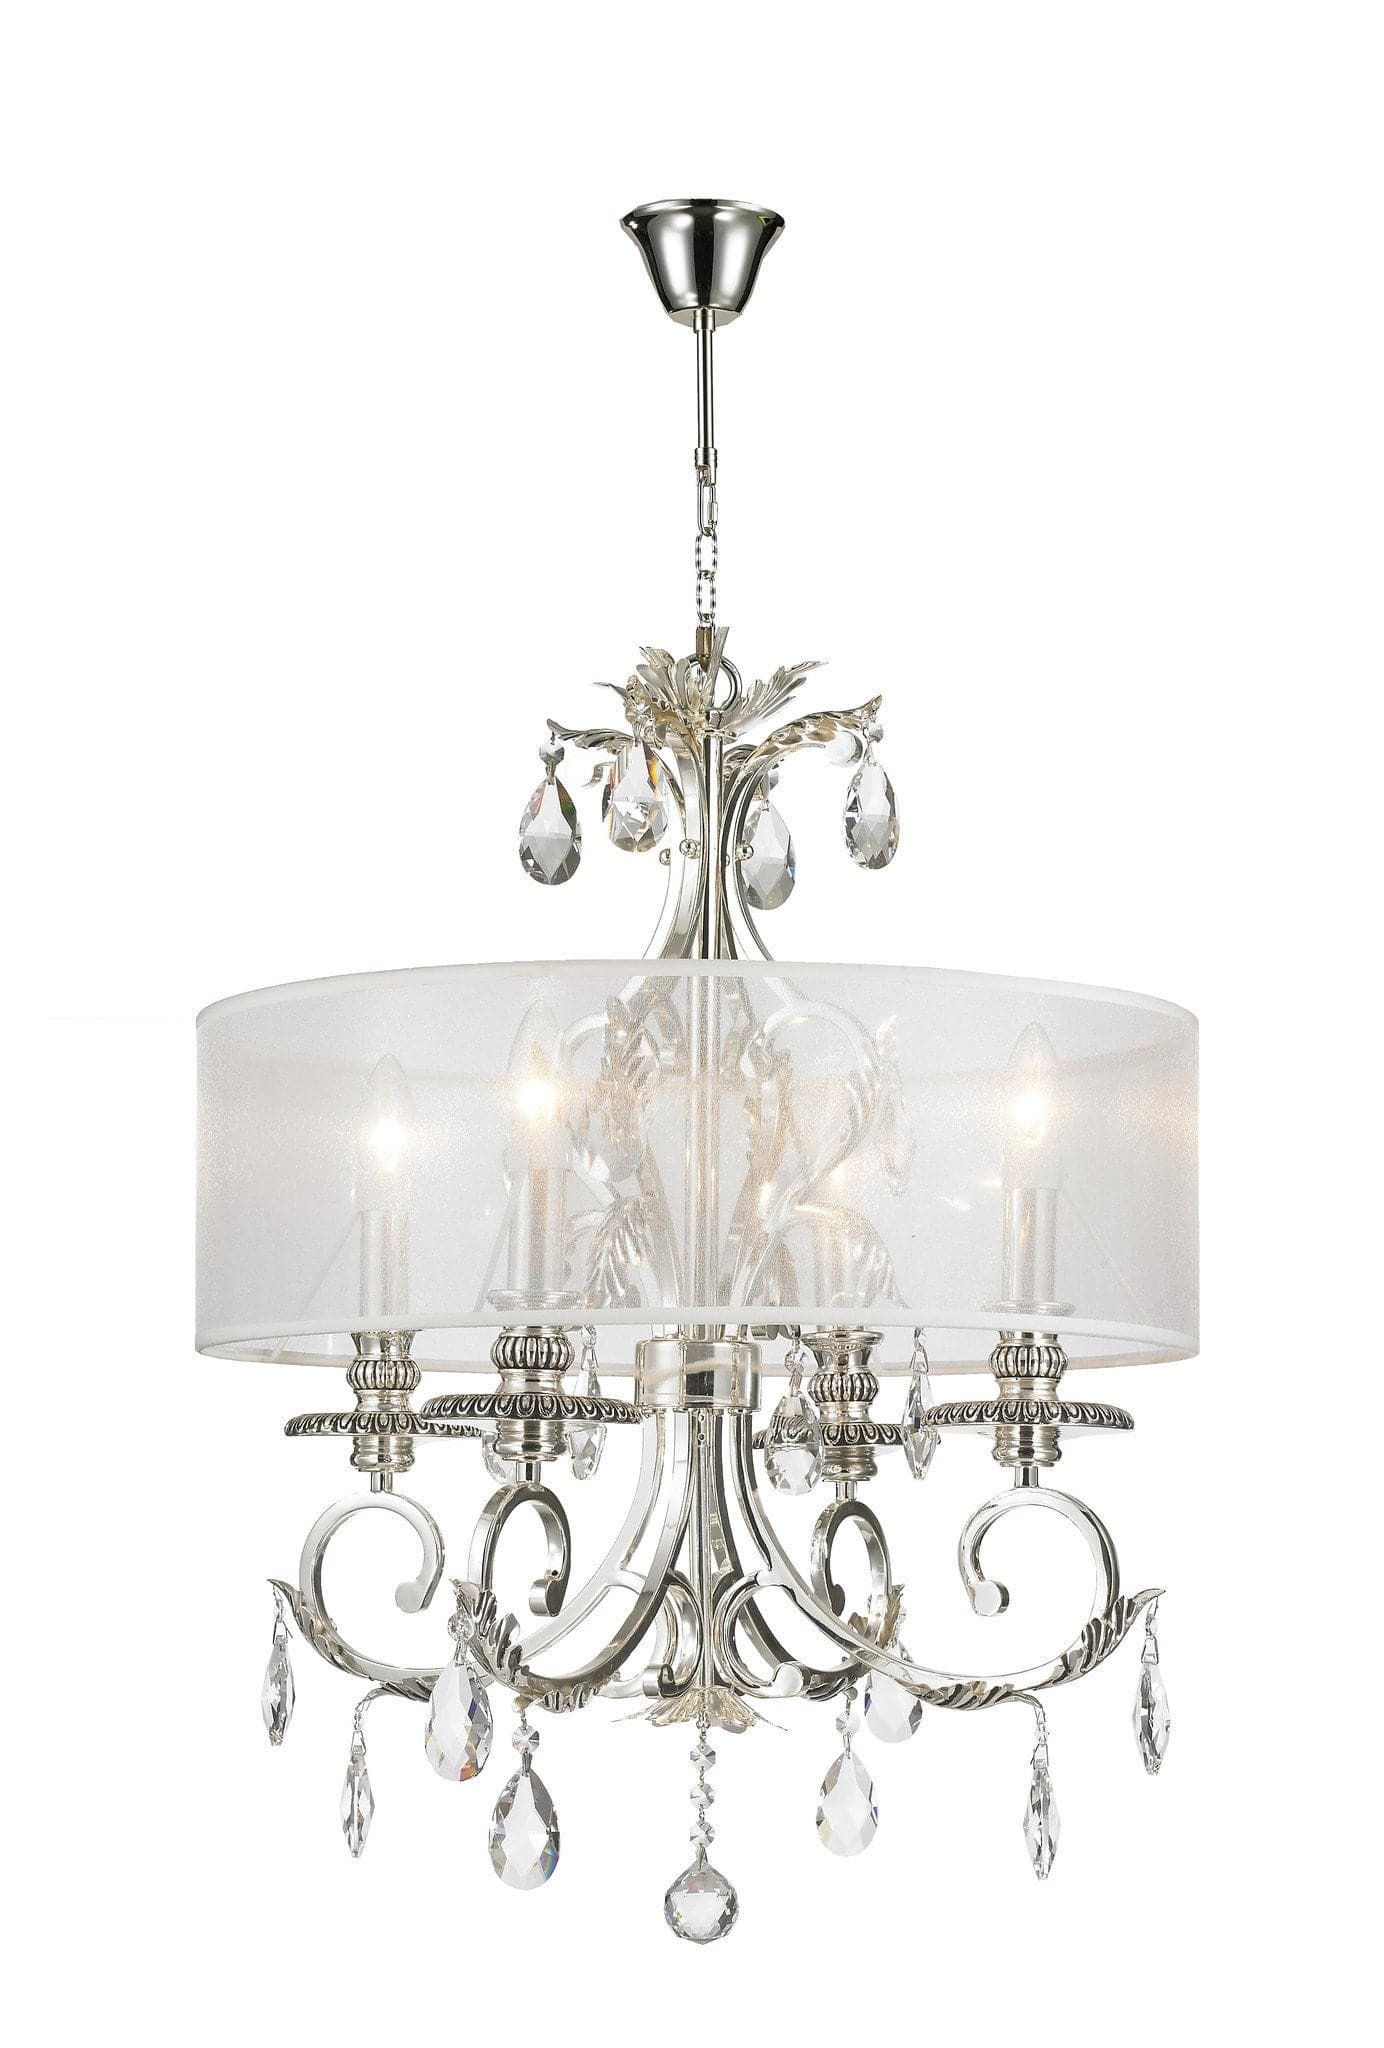 ARIA Hampton 4 Arm Chandelier Silver Plated Orb Outer Shade